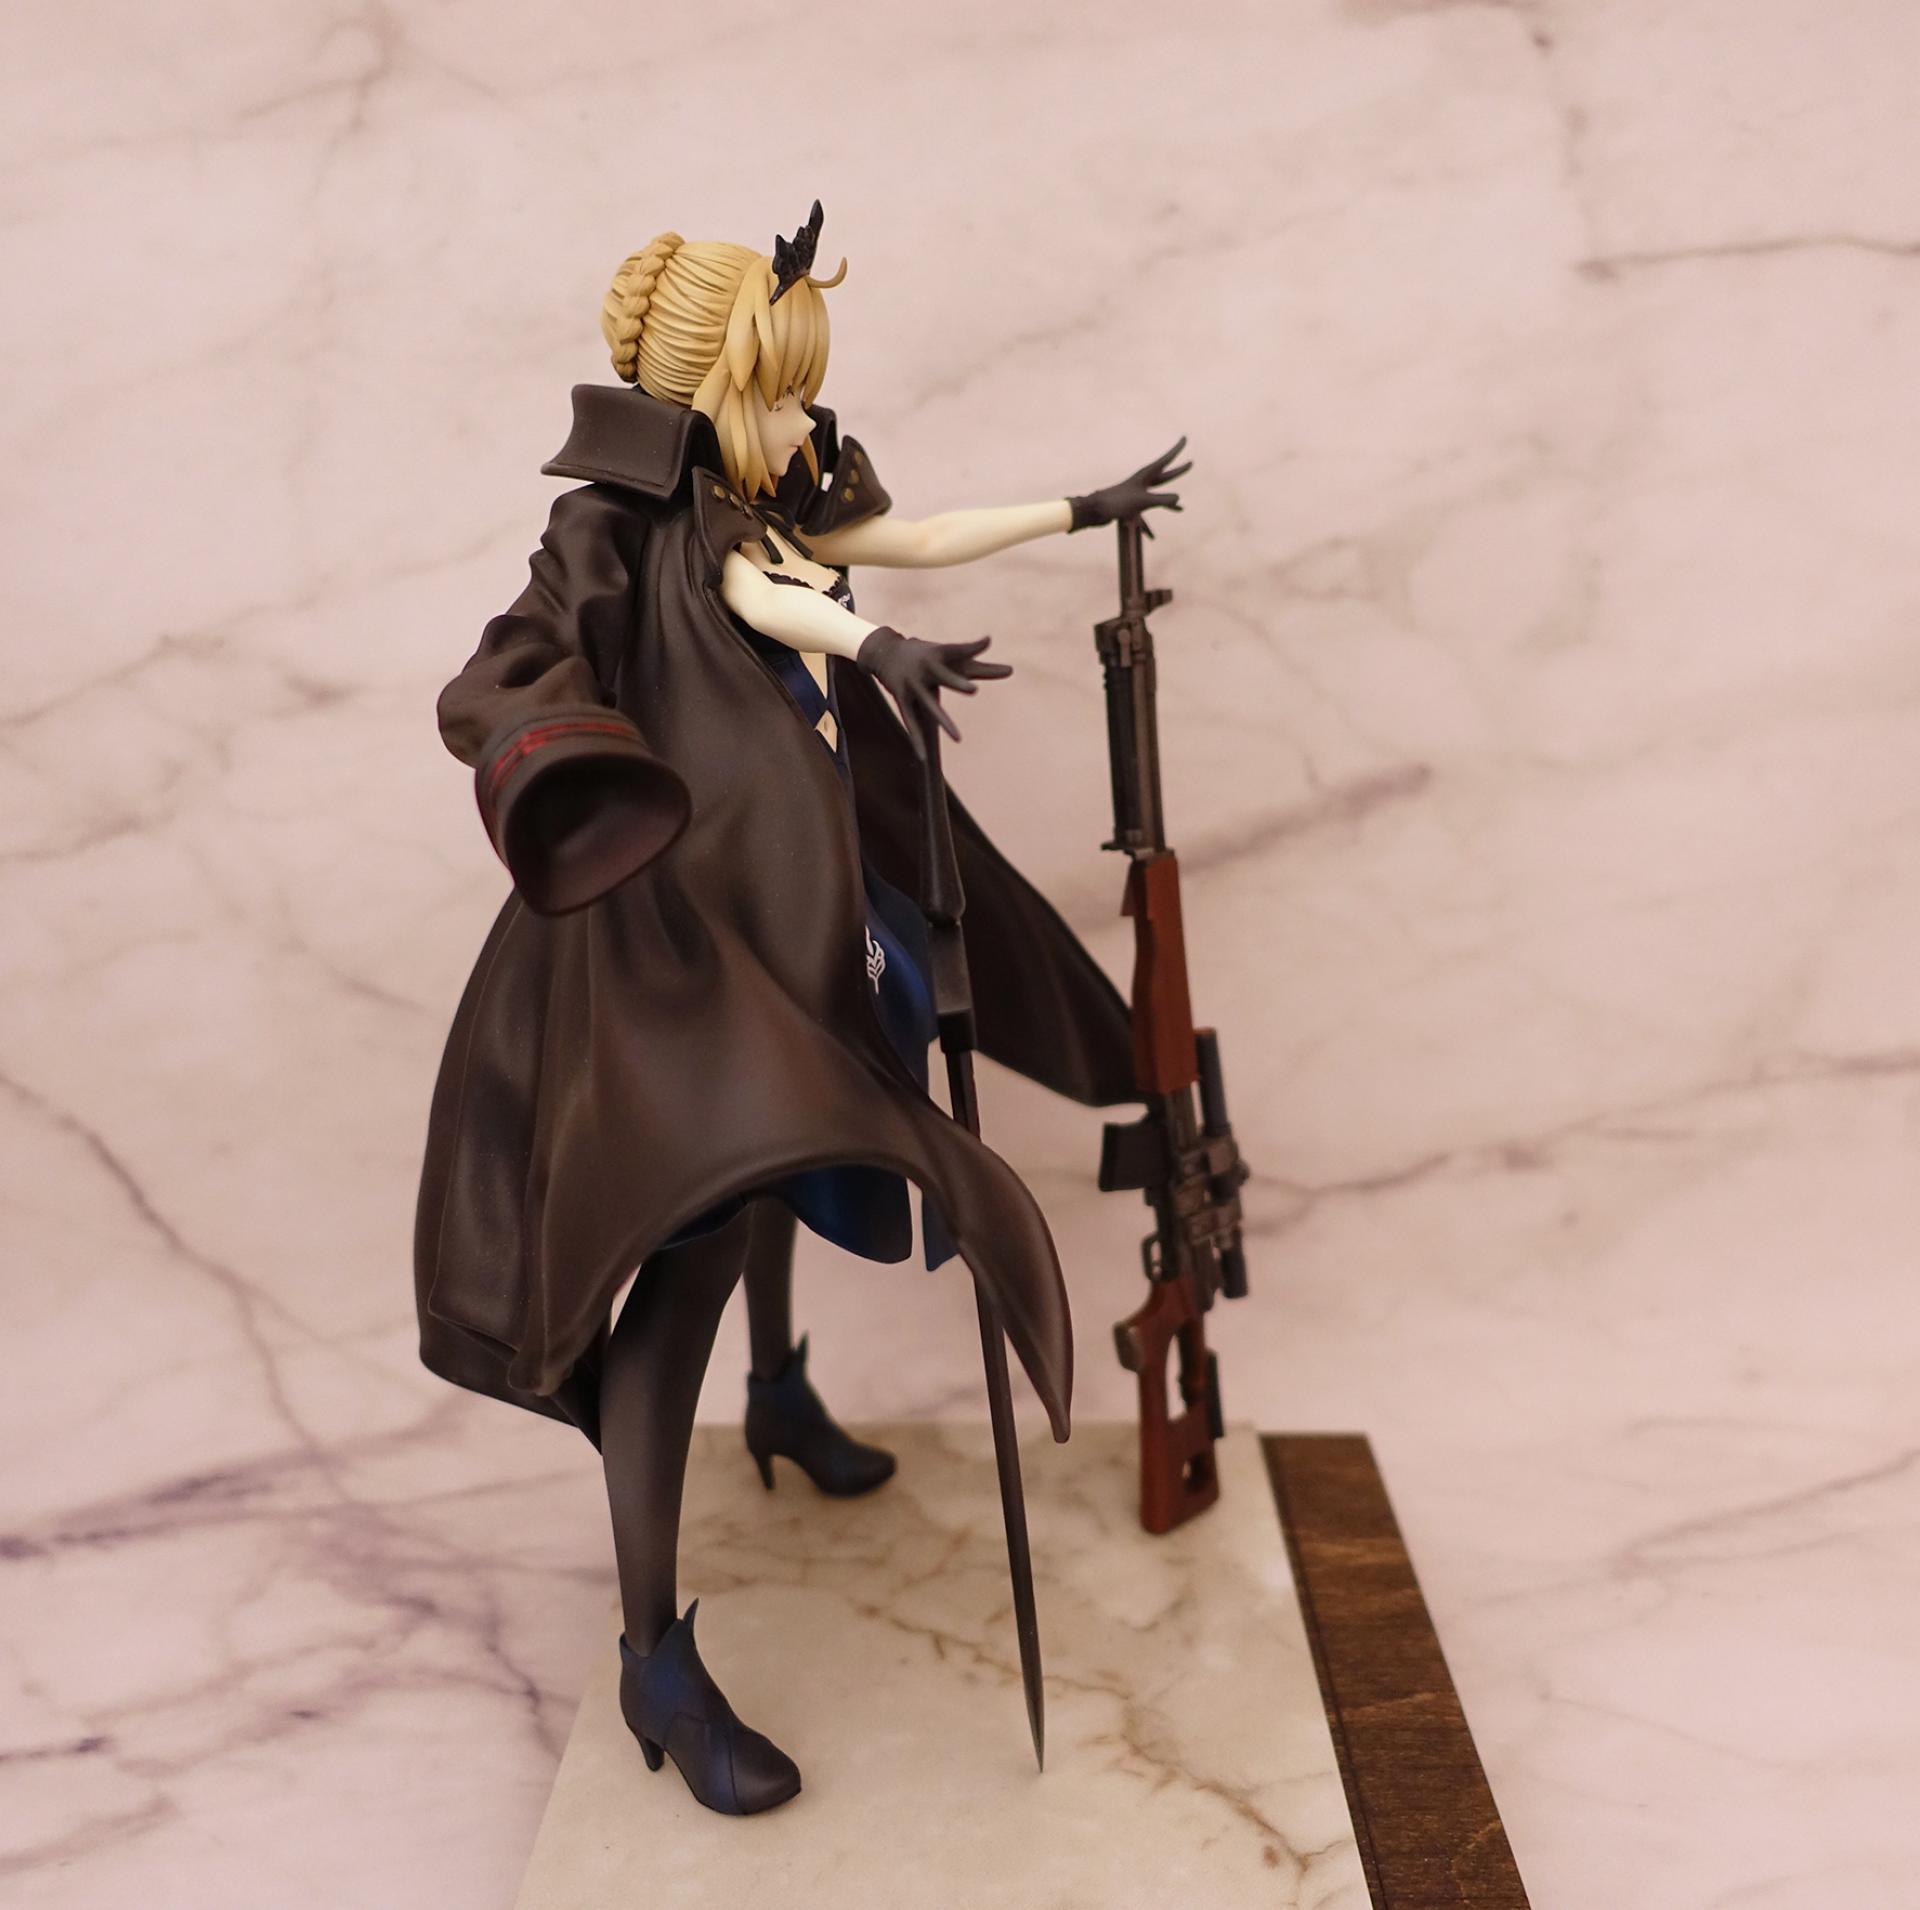 1/7 - Saber Alter - Rider - Fate/Grand Order